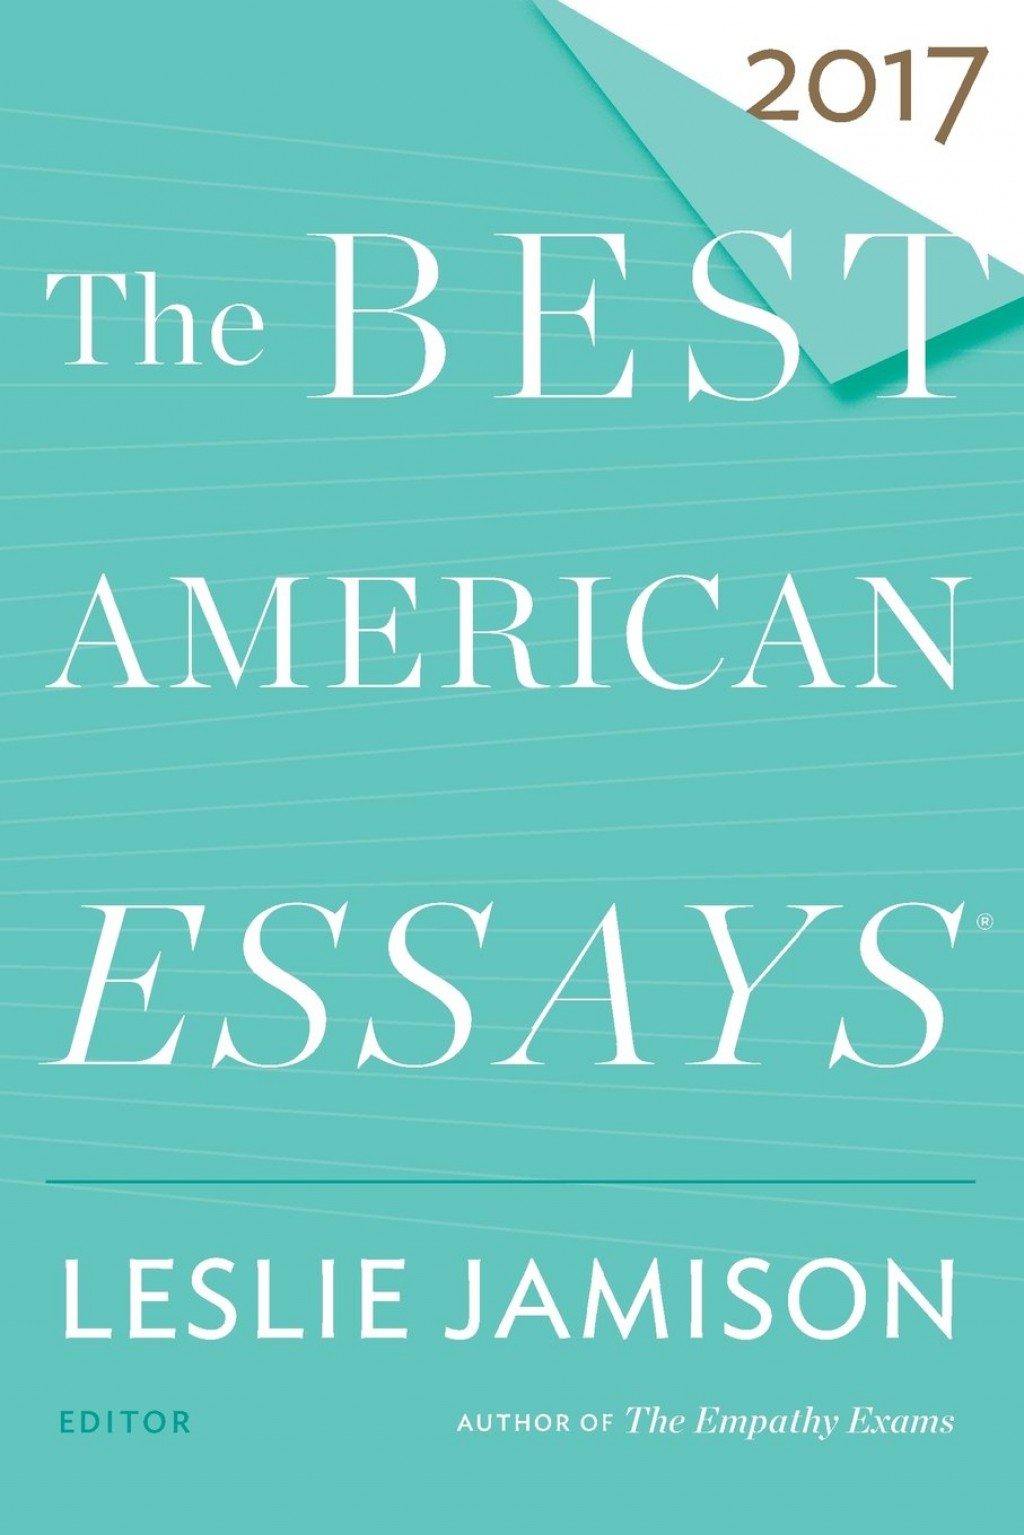 001 61tzl Nruvl Essay Example The Best American Wonderful Essays Of Century Table Contents 2013 Pdf Download Large